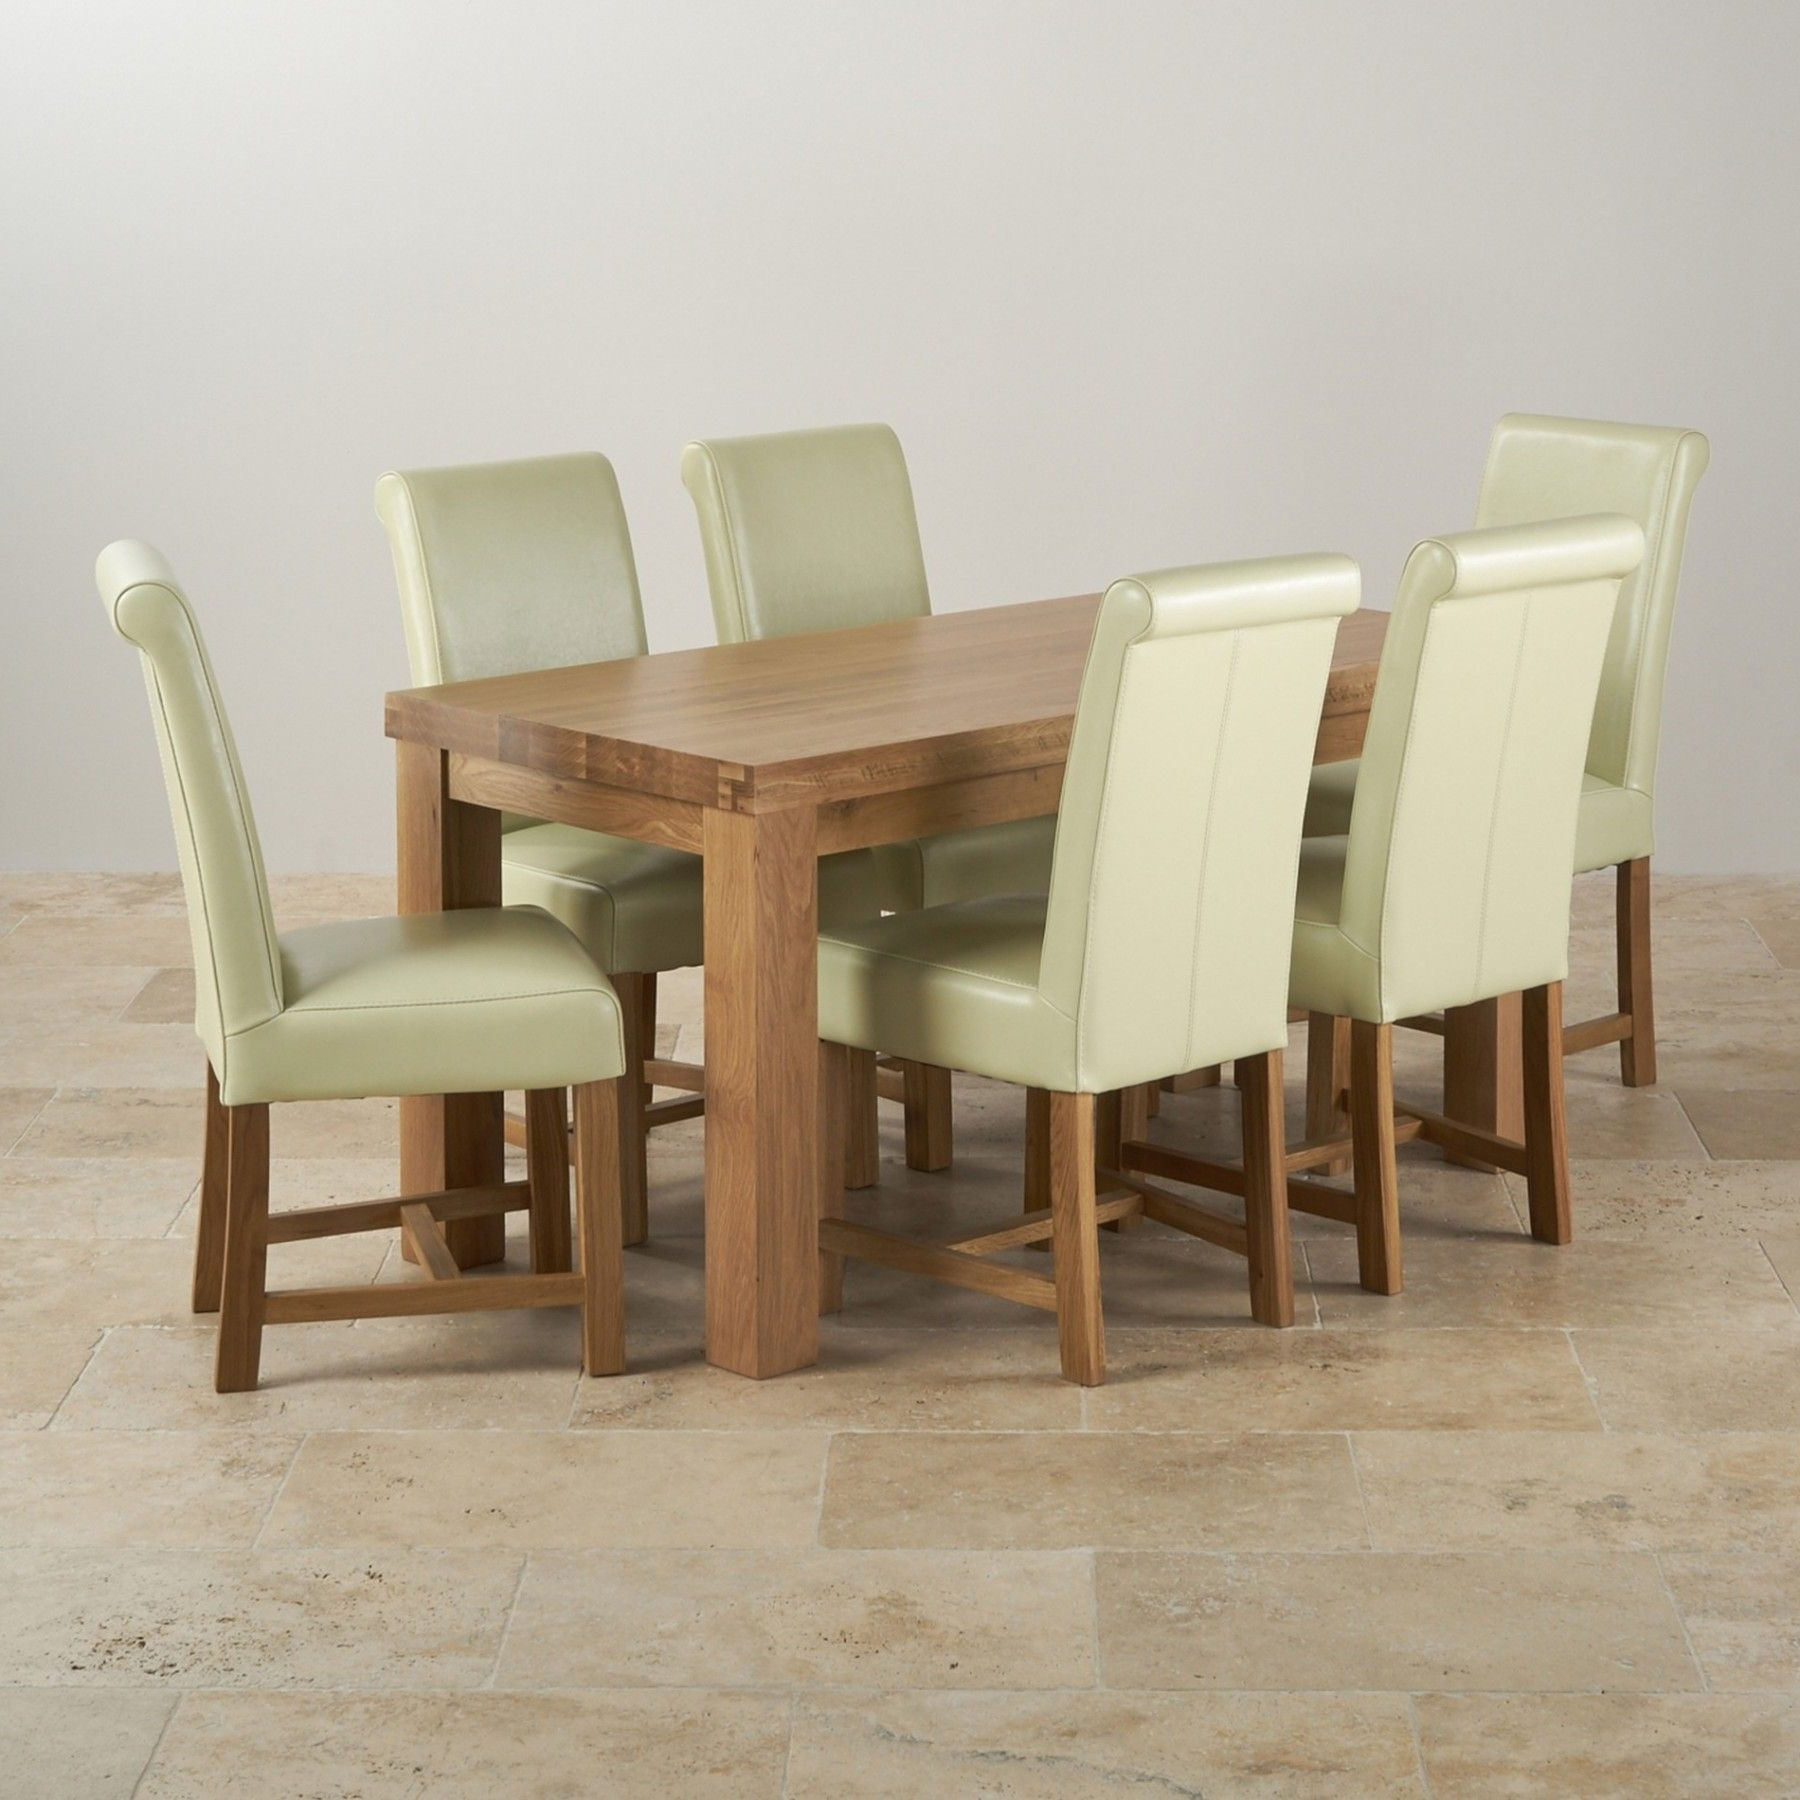 2017 This Modern Dining Set Consists Of A Chunky 5Ft Dining Table And 6 Within Cream And Wood Dining Tables (View 15 of 25)